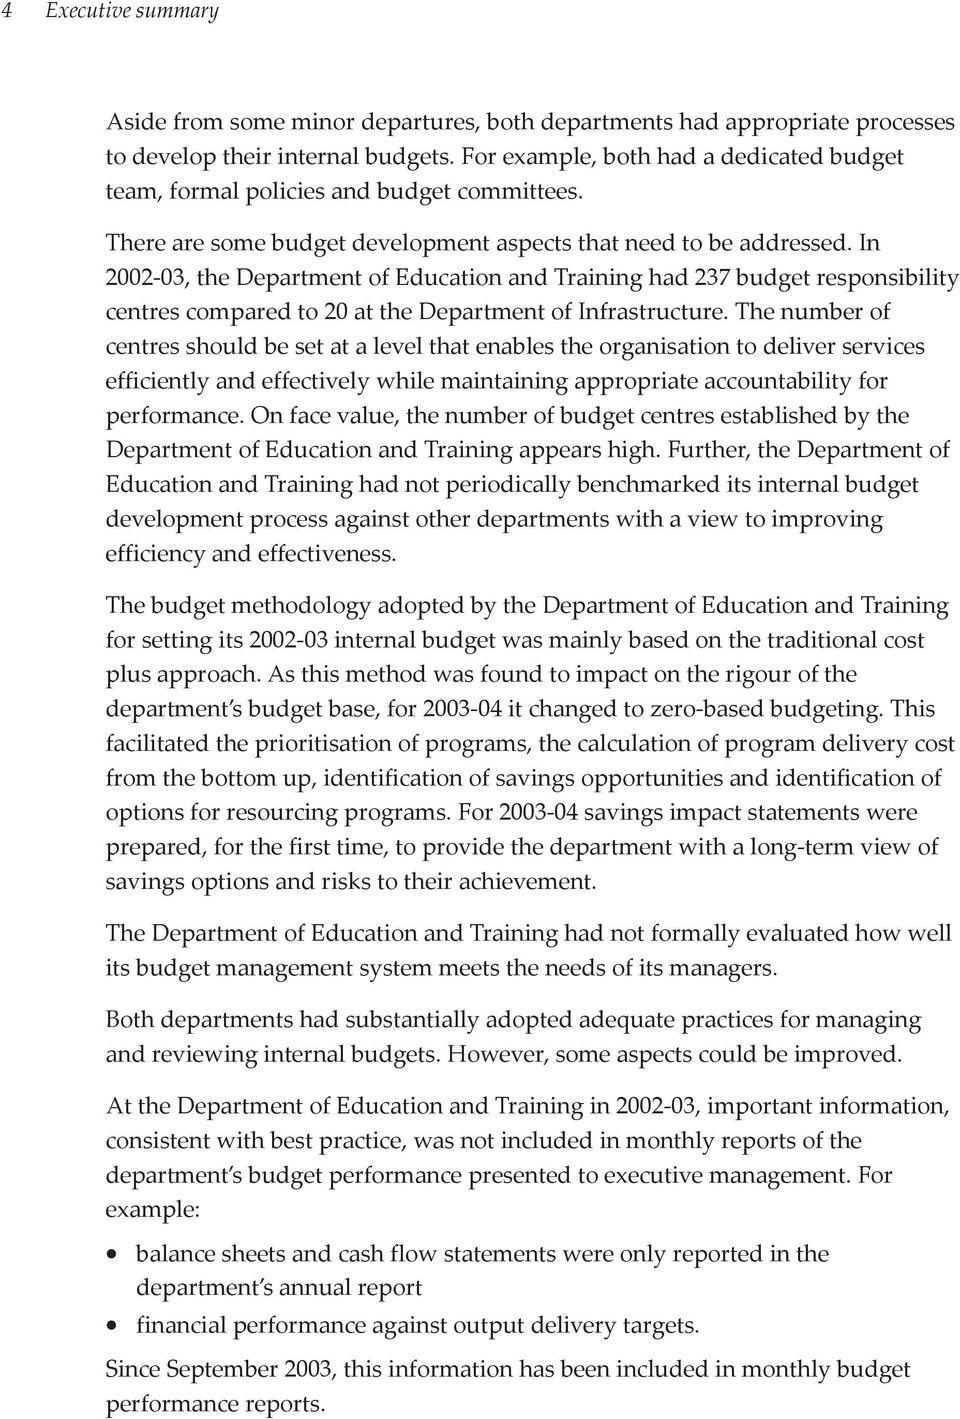 In 2002-03, the Department of Education and Training had 237 budget responsibility centres compared to 20 at the Department of Infrastructure.